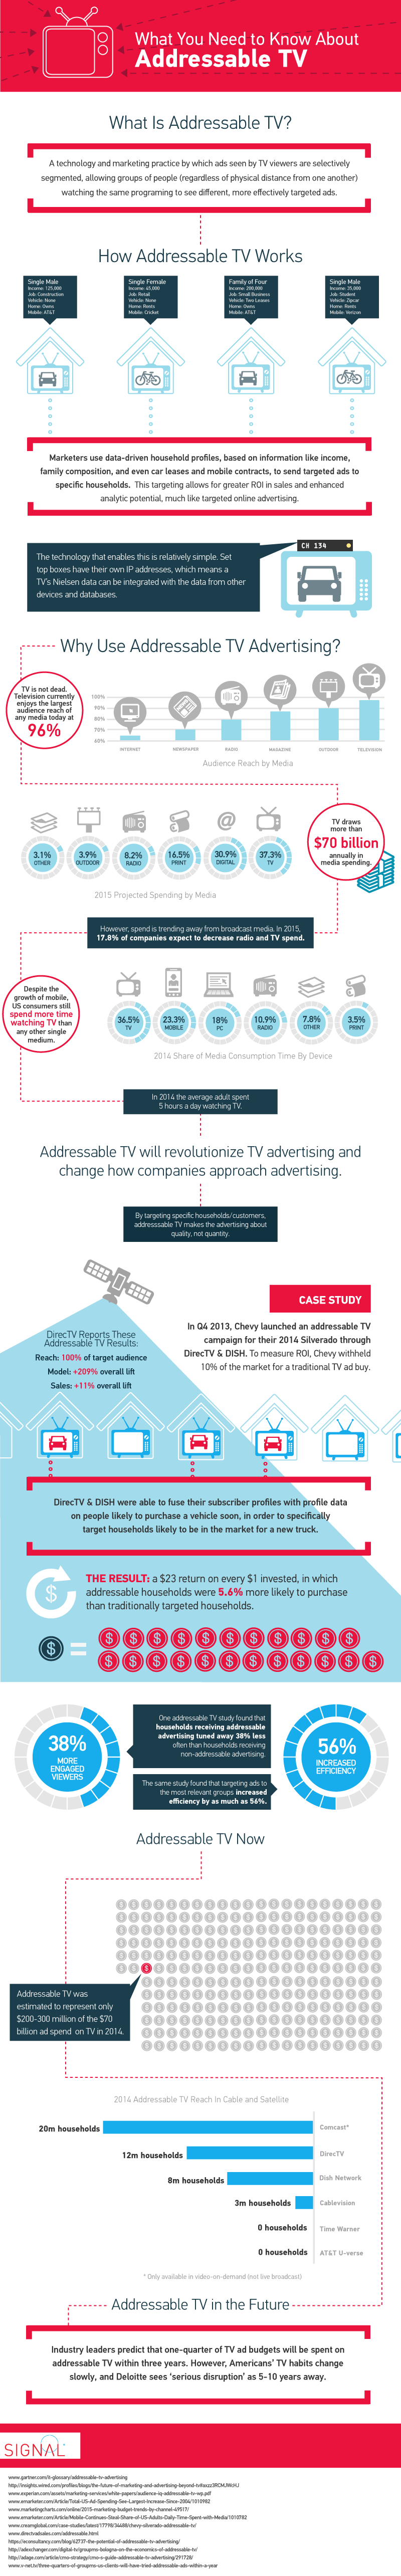 Addressable TV Infographic